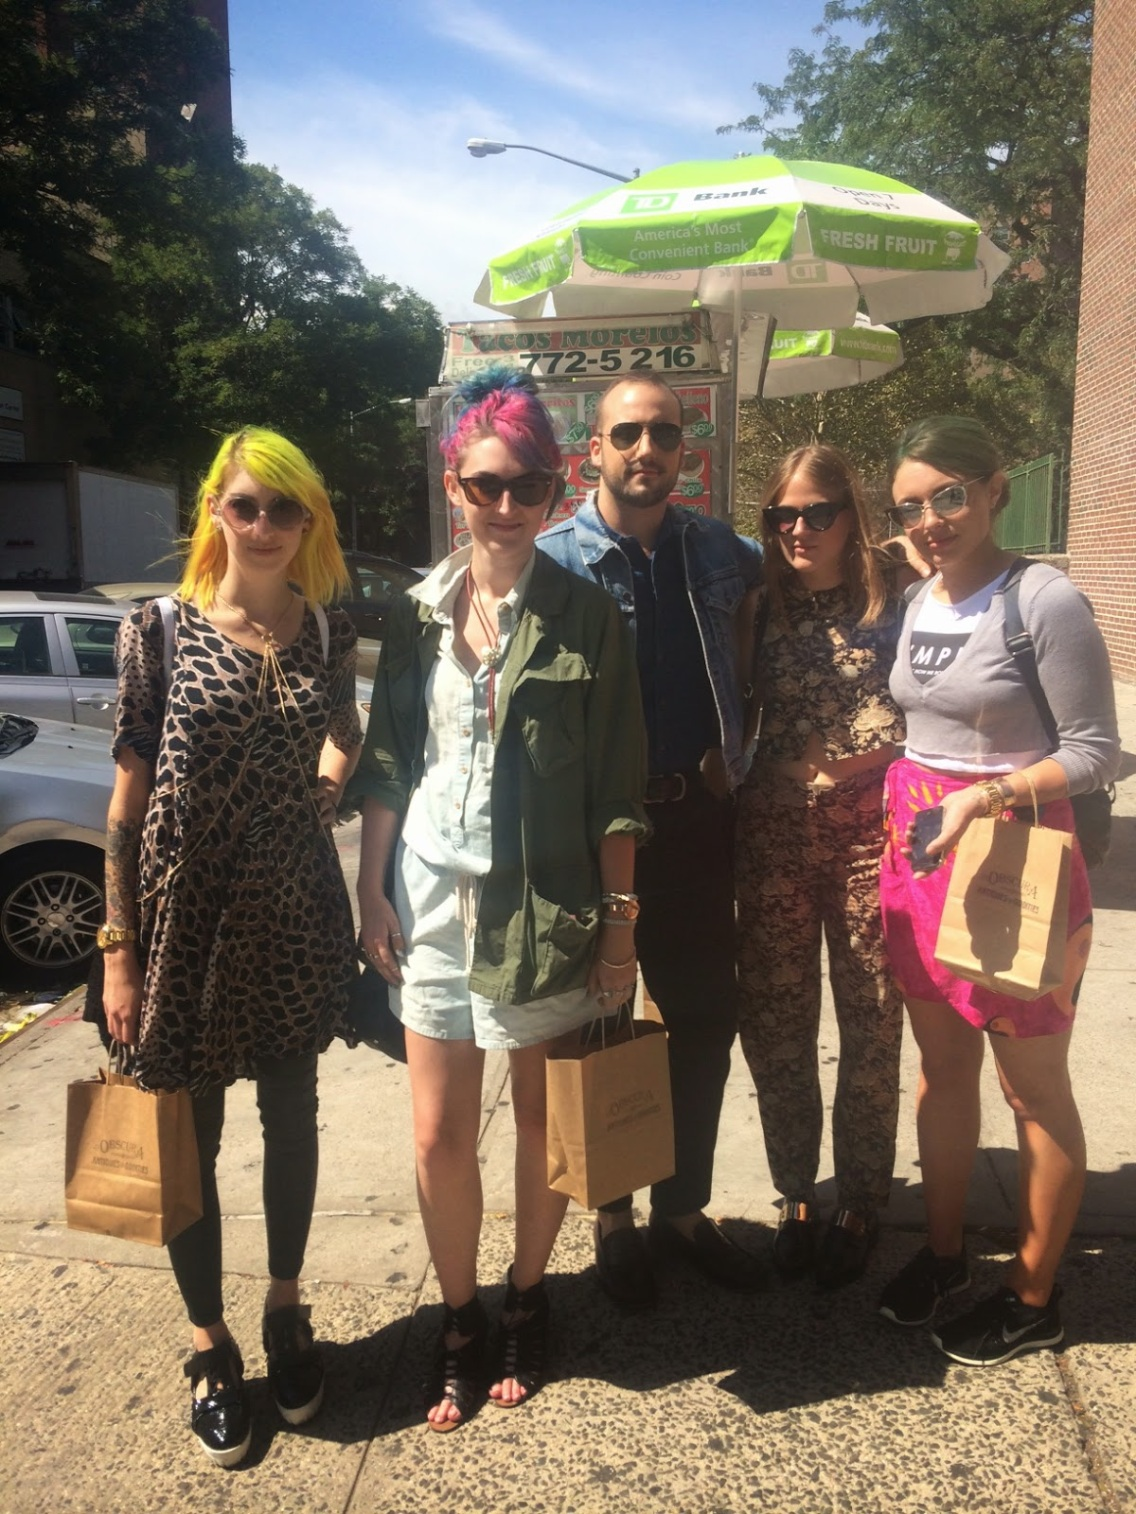 Shopping in East Village (Photo via The Wicked Wallflower)